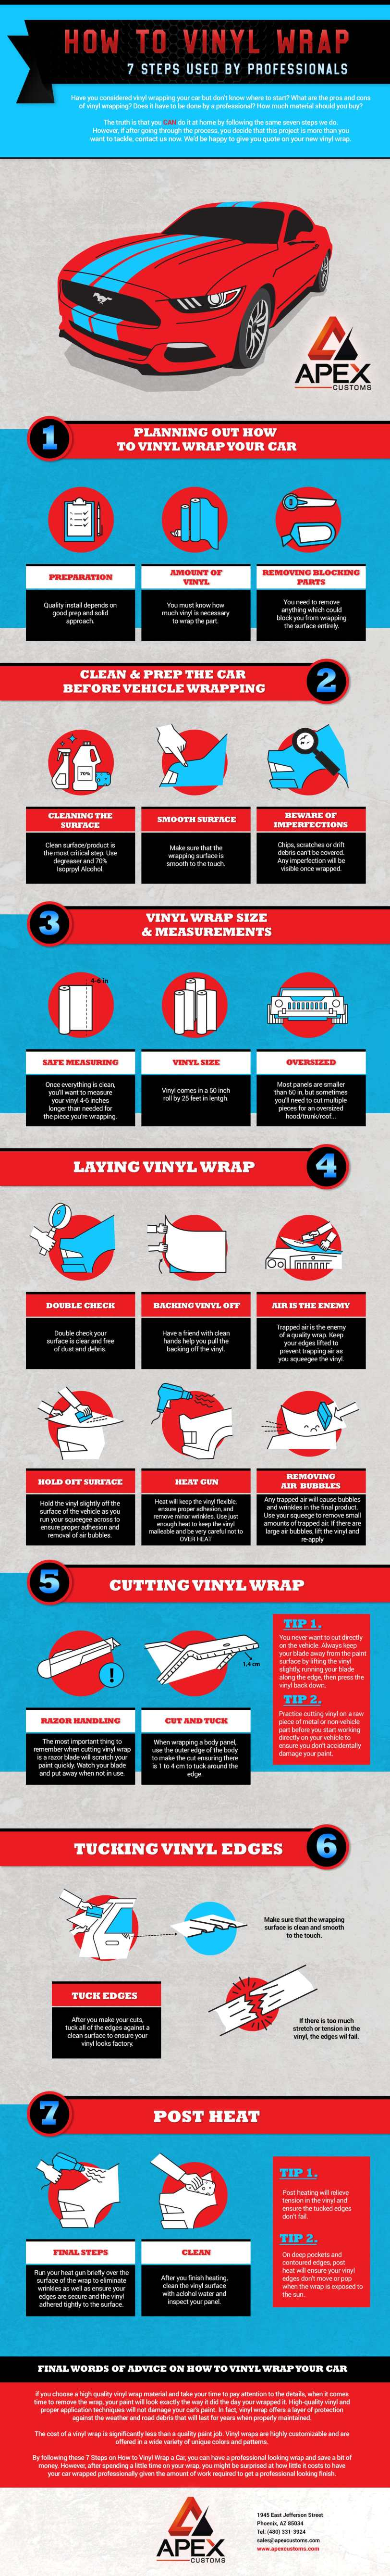 How To Vinyl Wrap: 7 Steps Used by Professionals